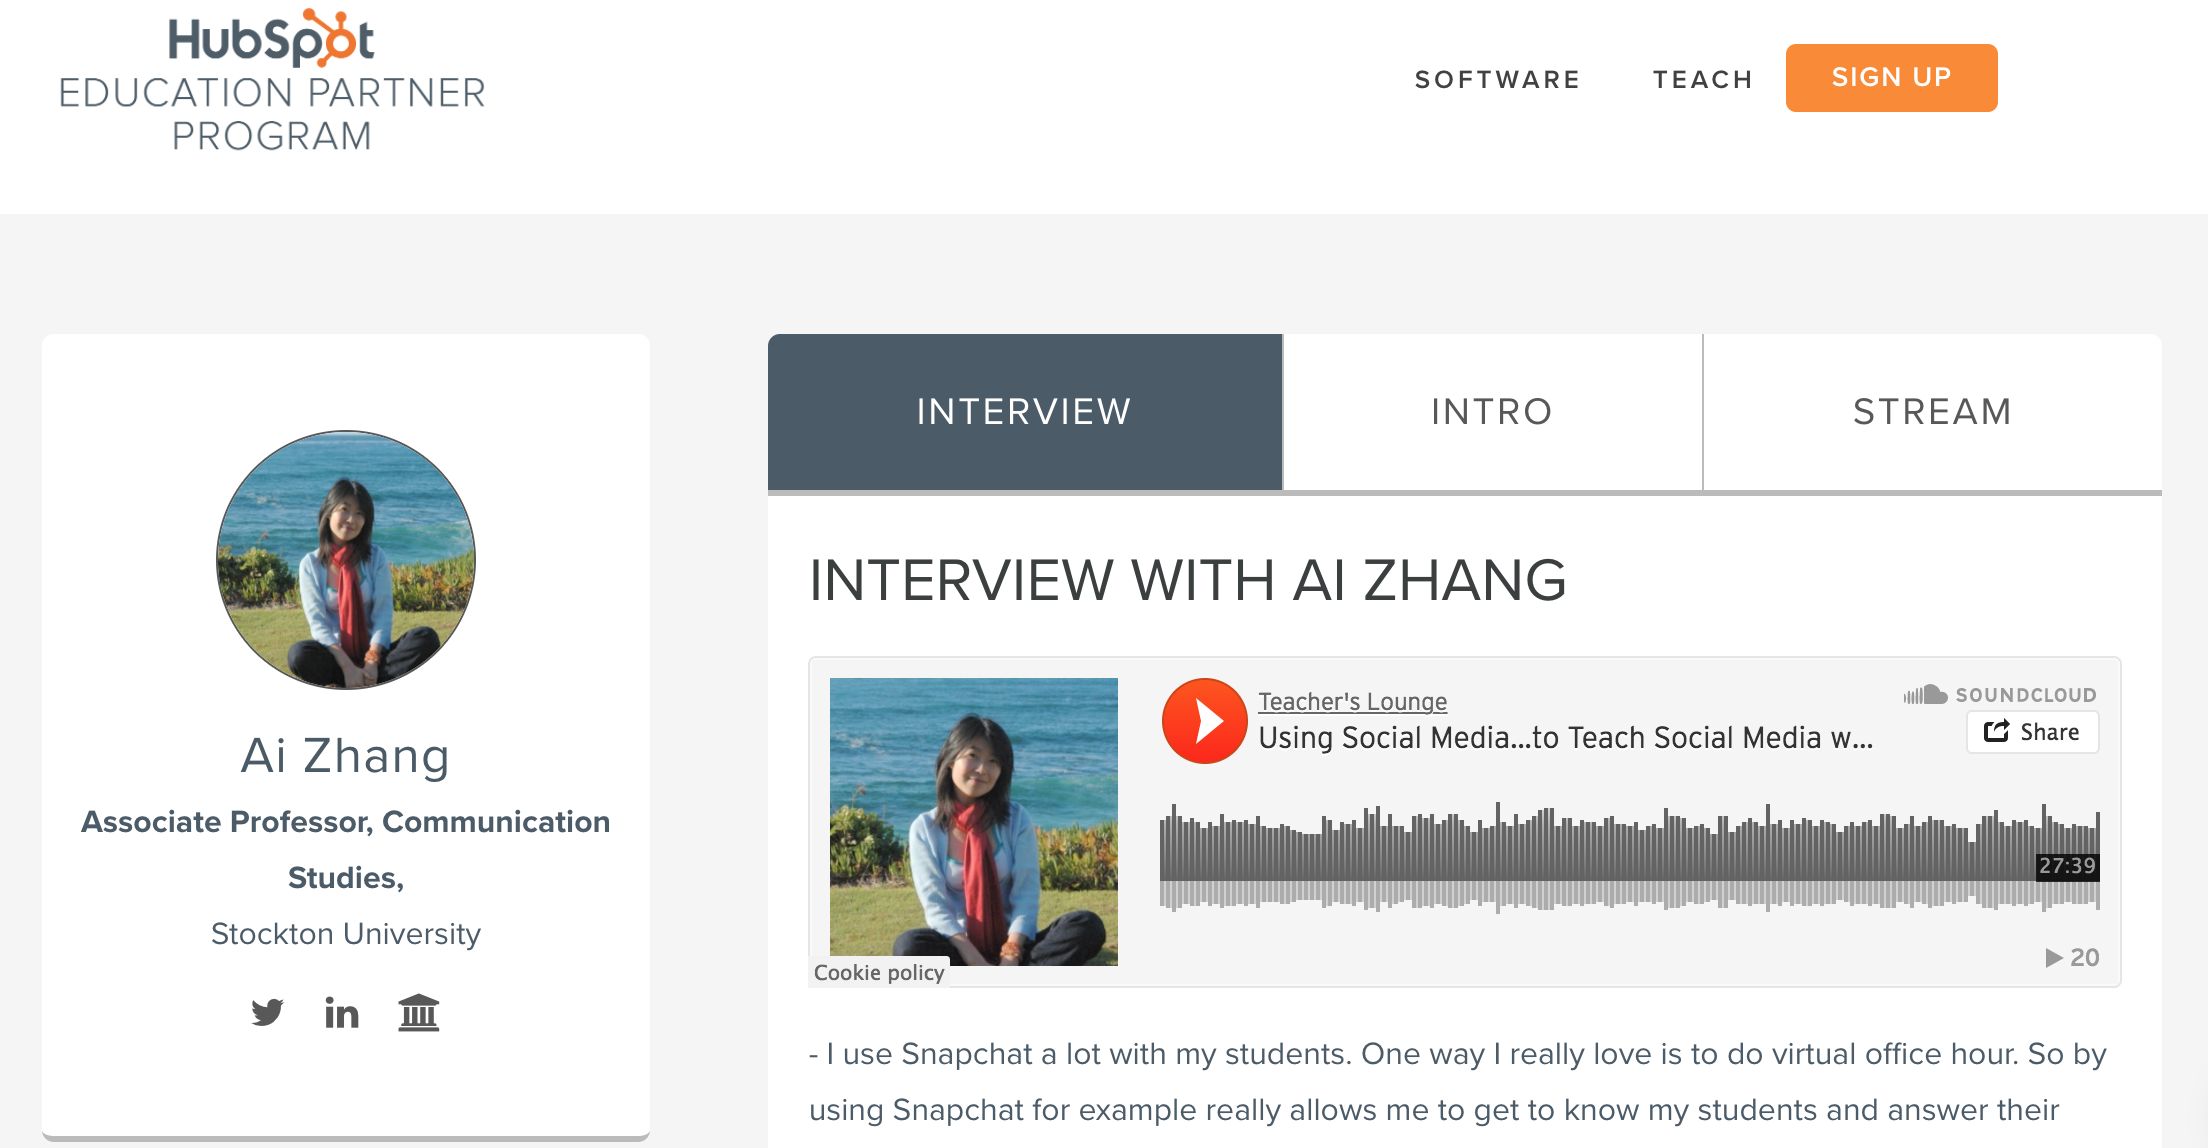 Using Social Media to Teach Social Media: My Interview with